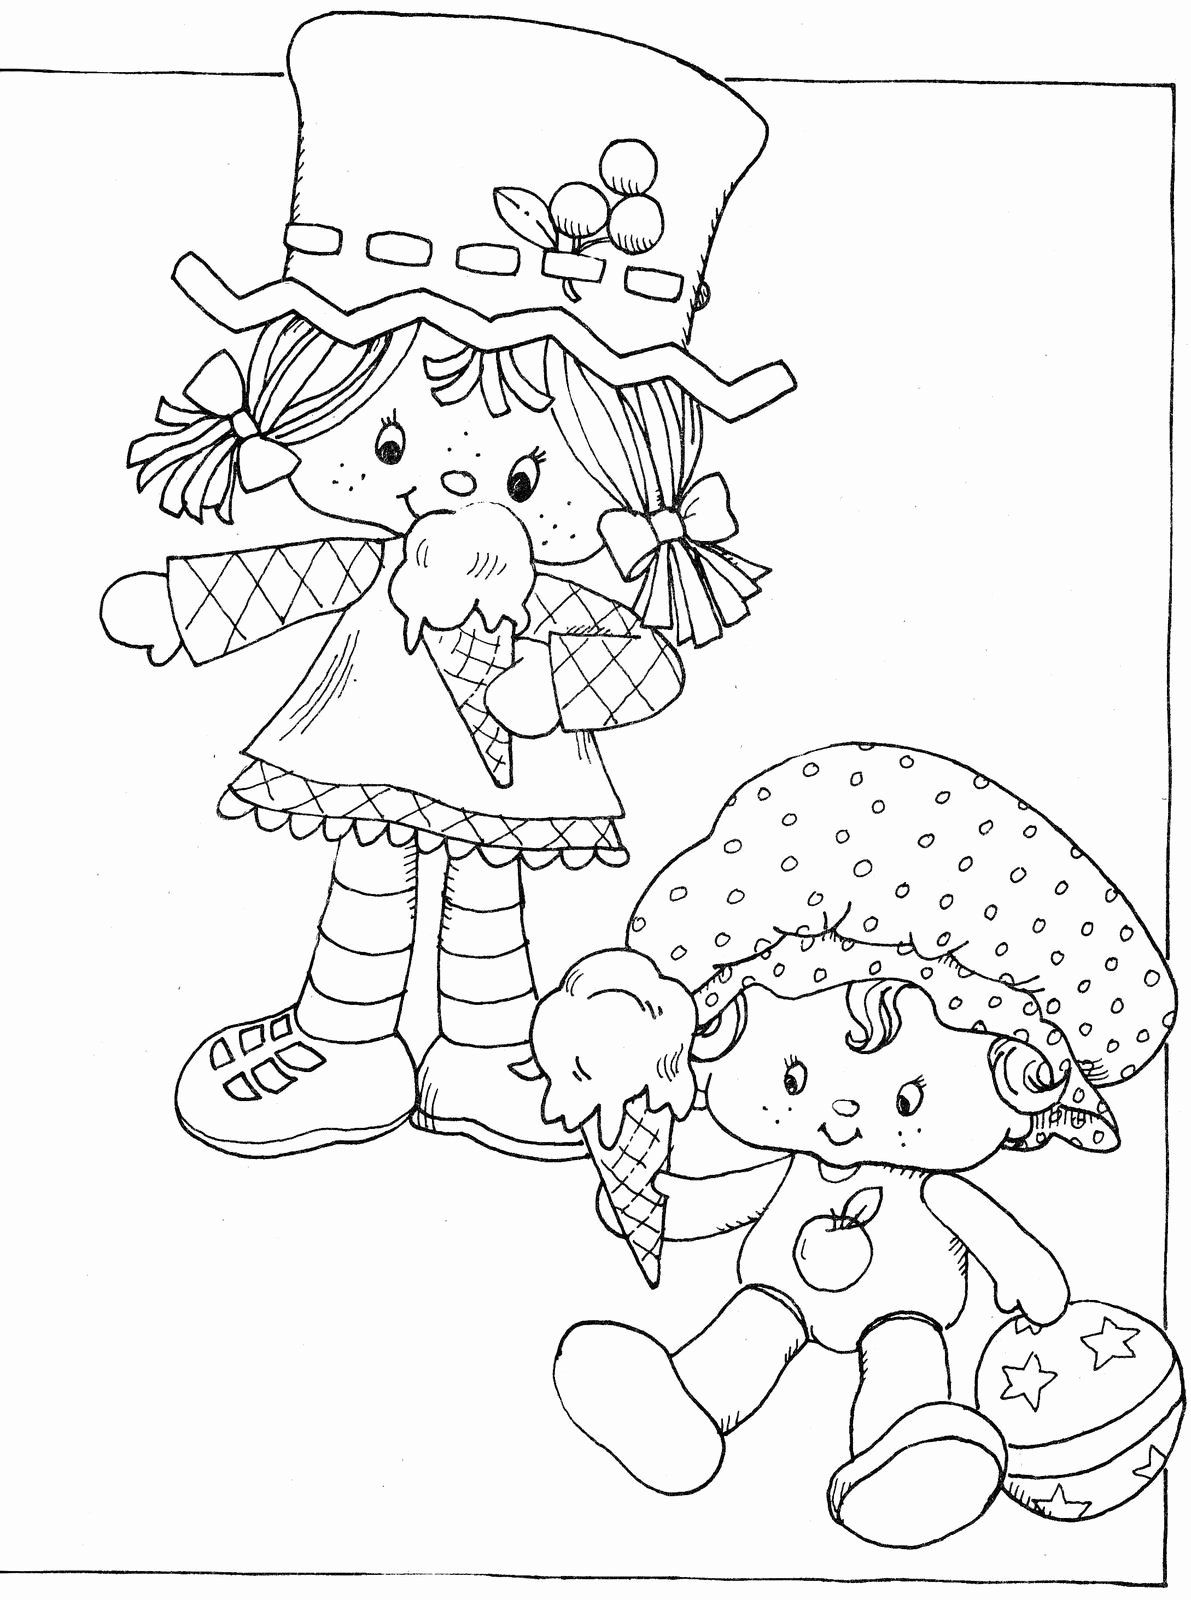 Chicken Adult Coloring Pages In